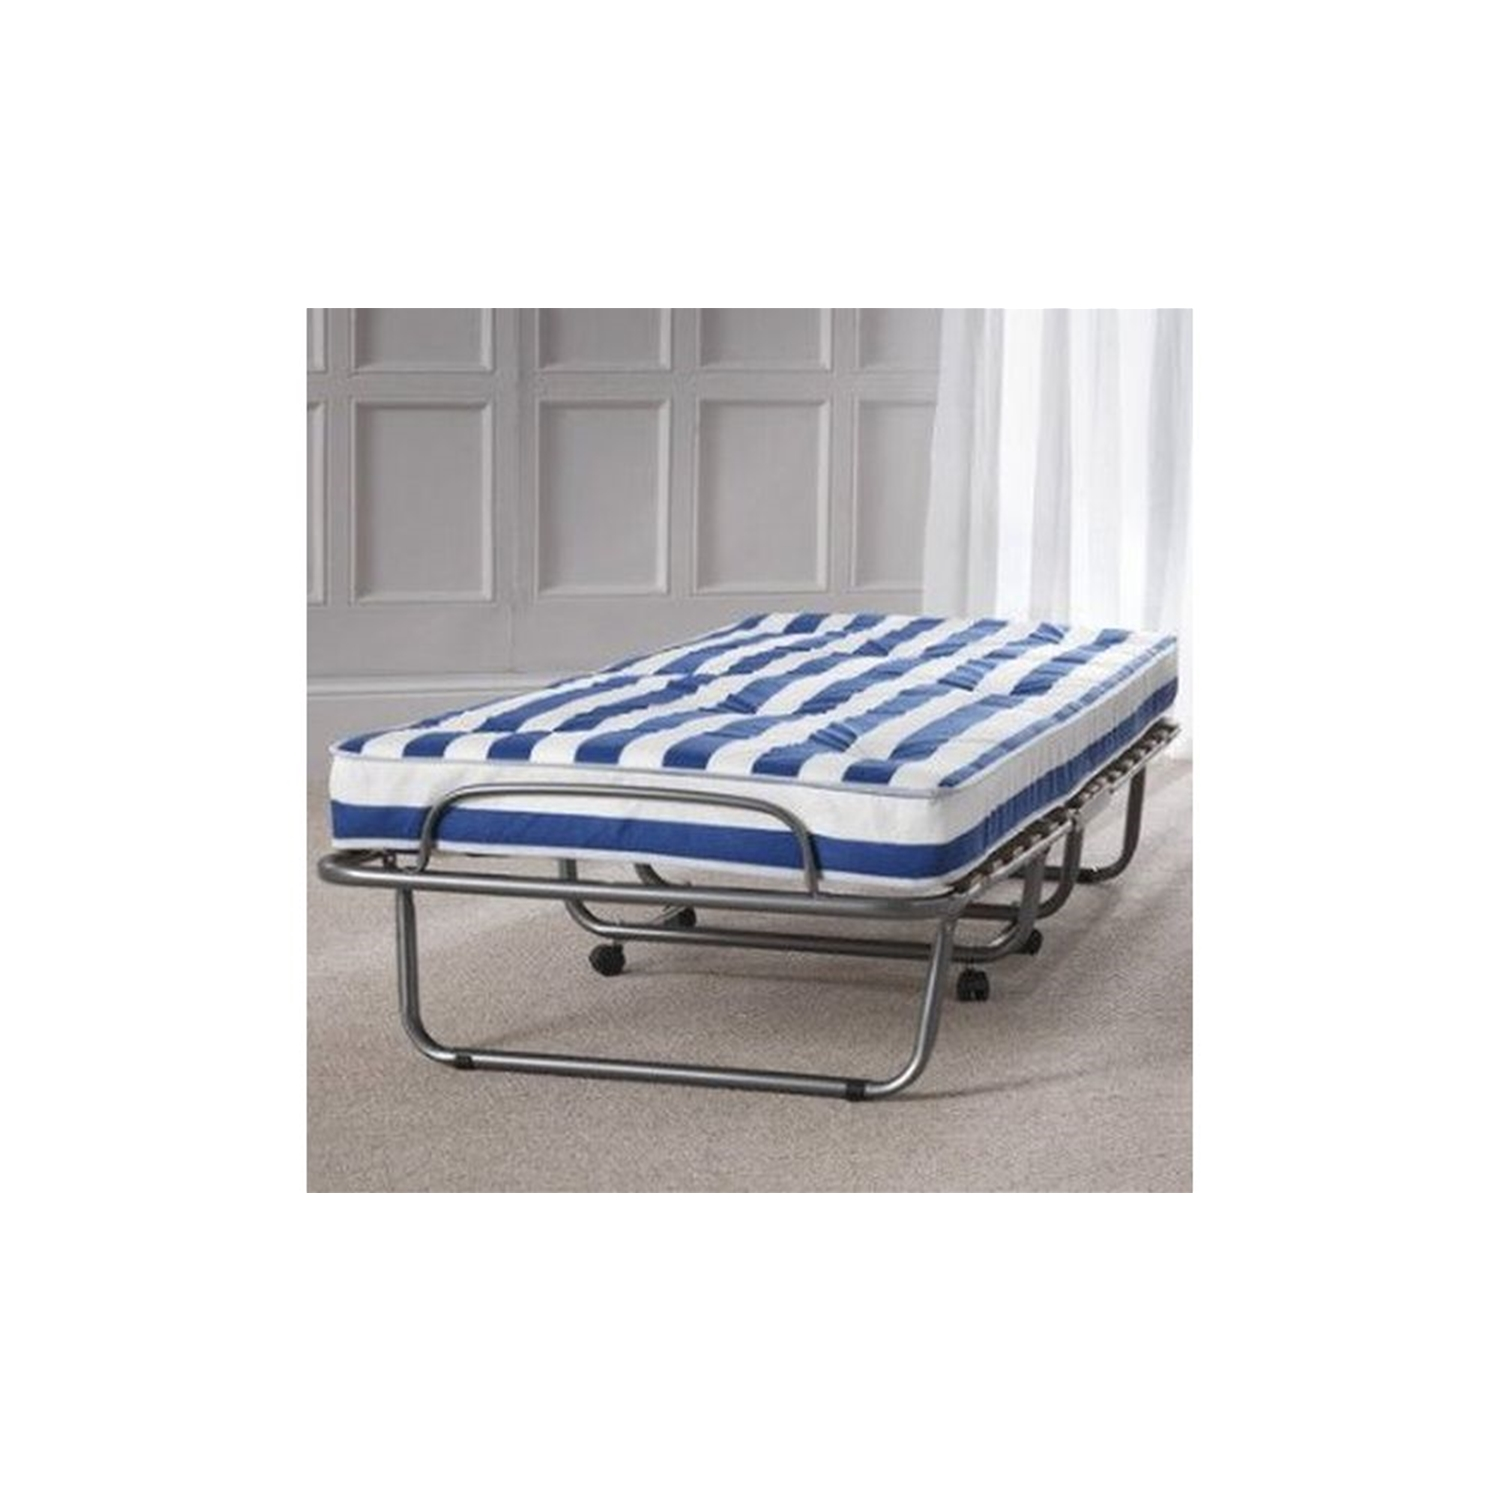 Image of Casa Arezzo 85cm Folding Guest Bed